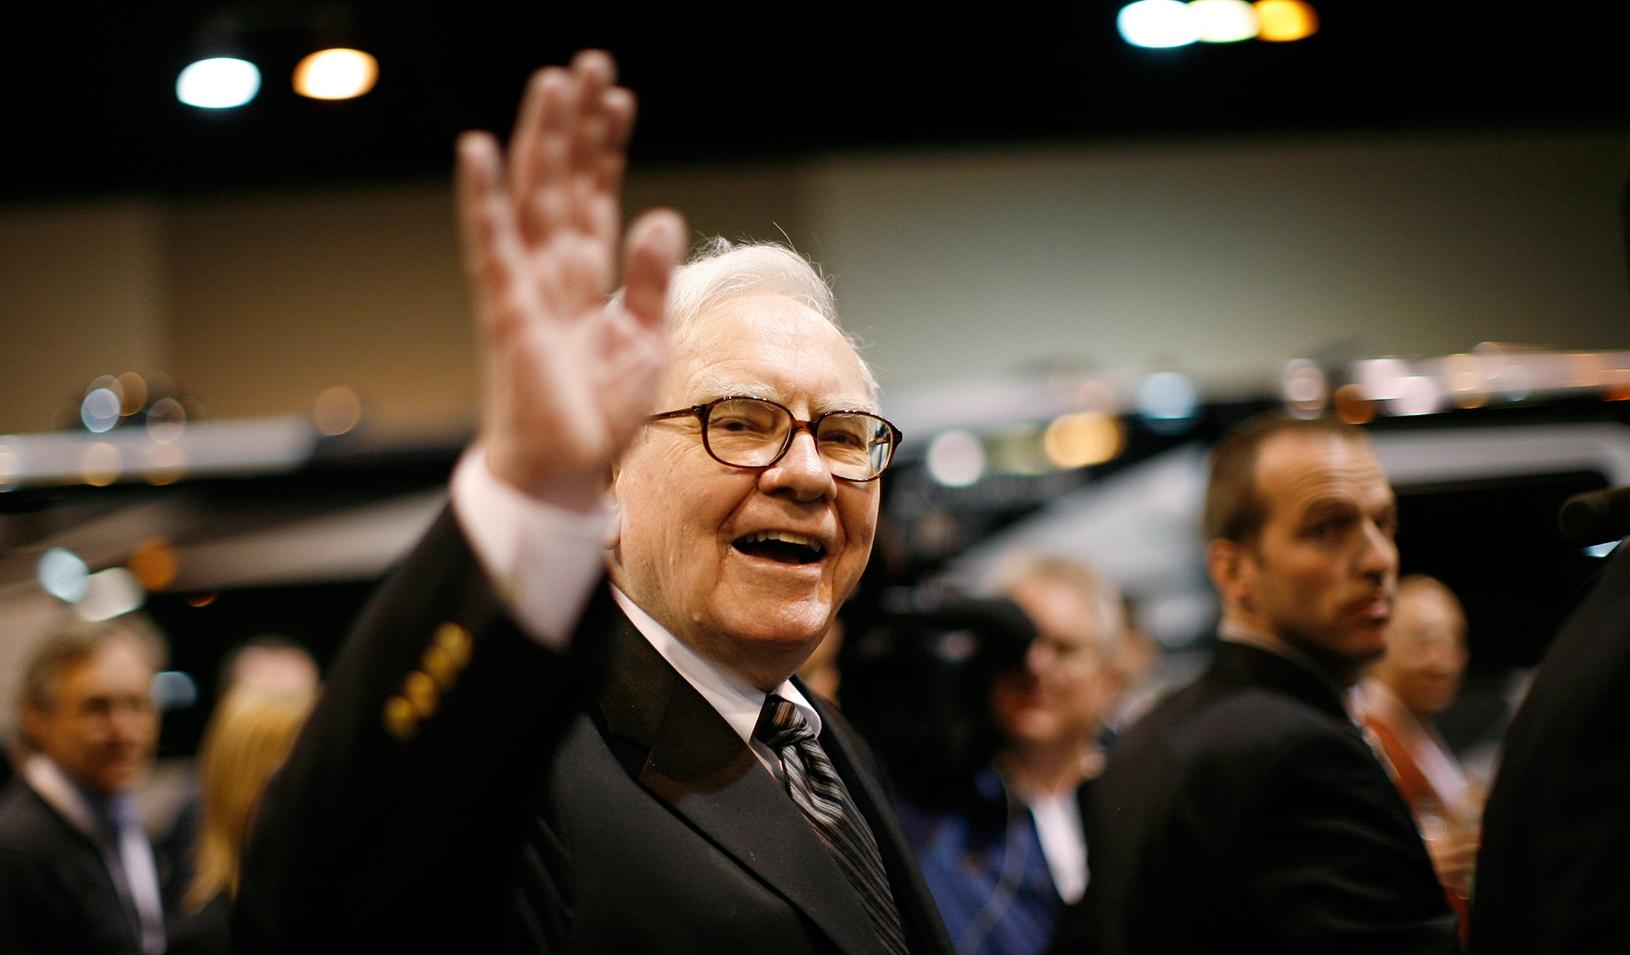 Cryptocurrencies to end in tears, says investor wizard Warren Buffet